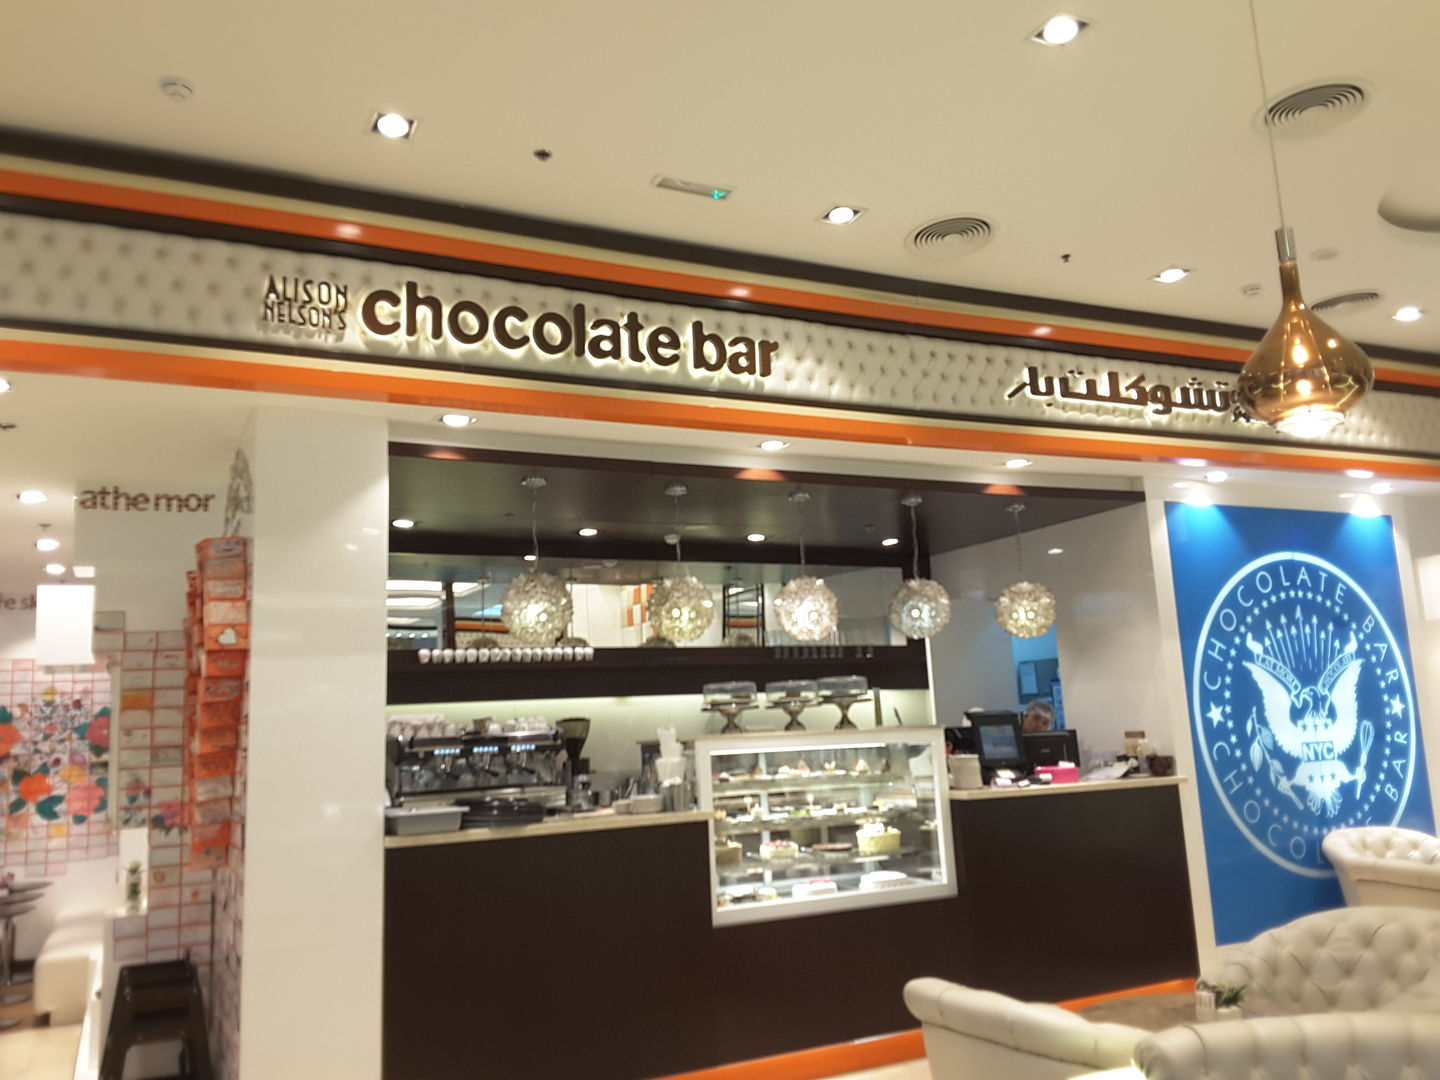 HiDubai-business-alison-nelsons-chocolate-bar-food-beverage-bakeries-desserts-sweets-al-barsha-1-dubai-2